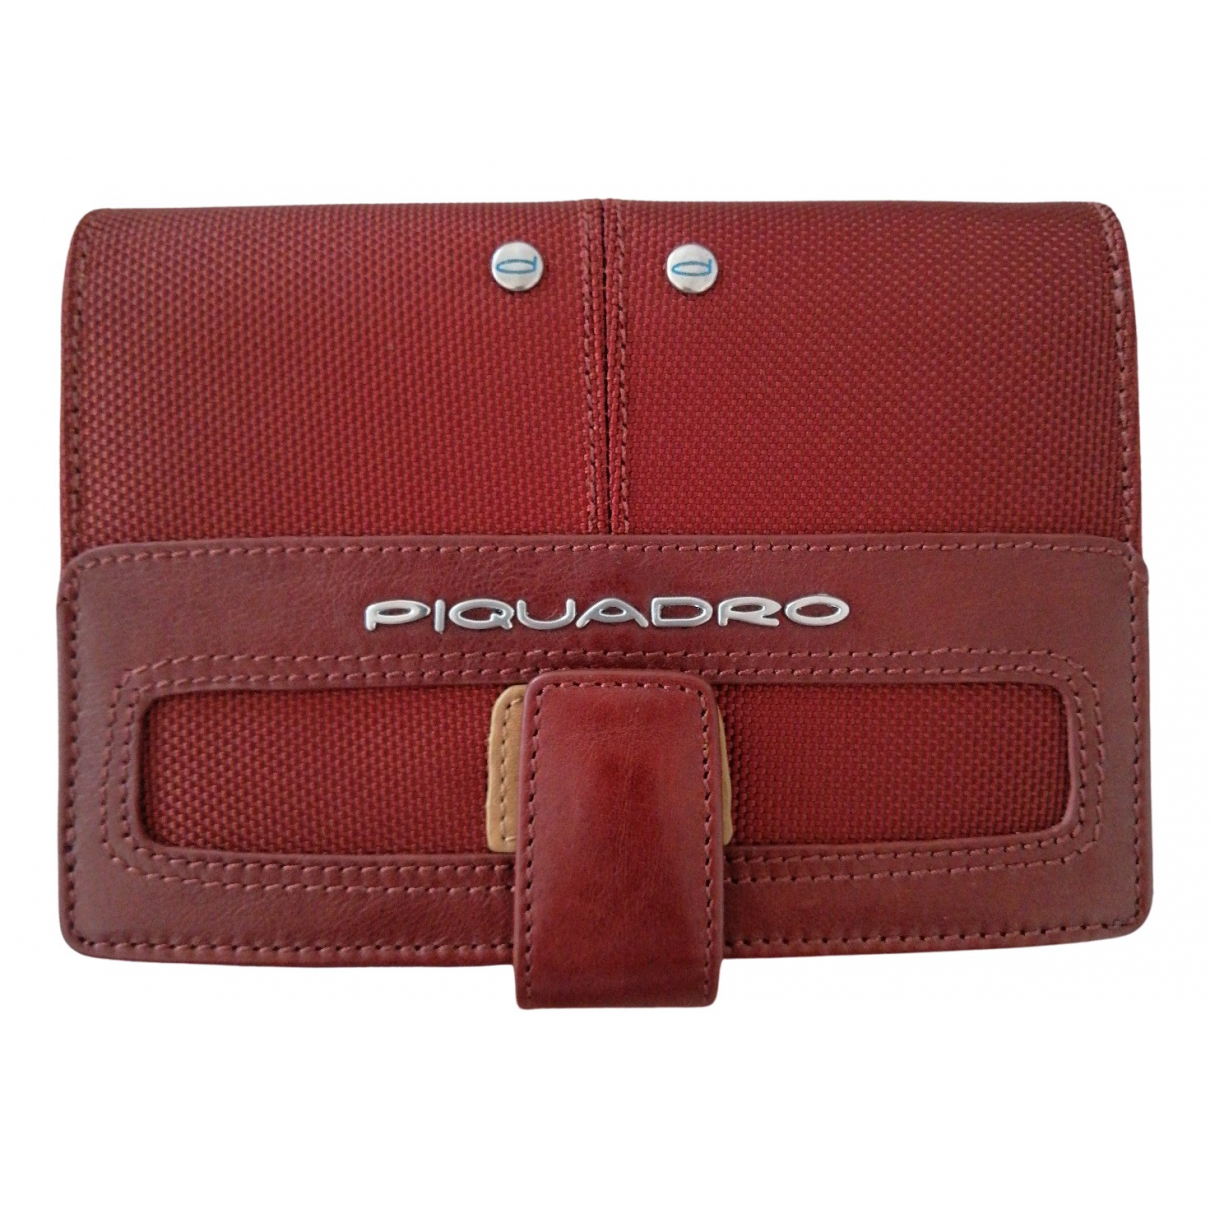 Piquadro \N Burgundy Leather Purses, wallet & cases for Women \N